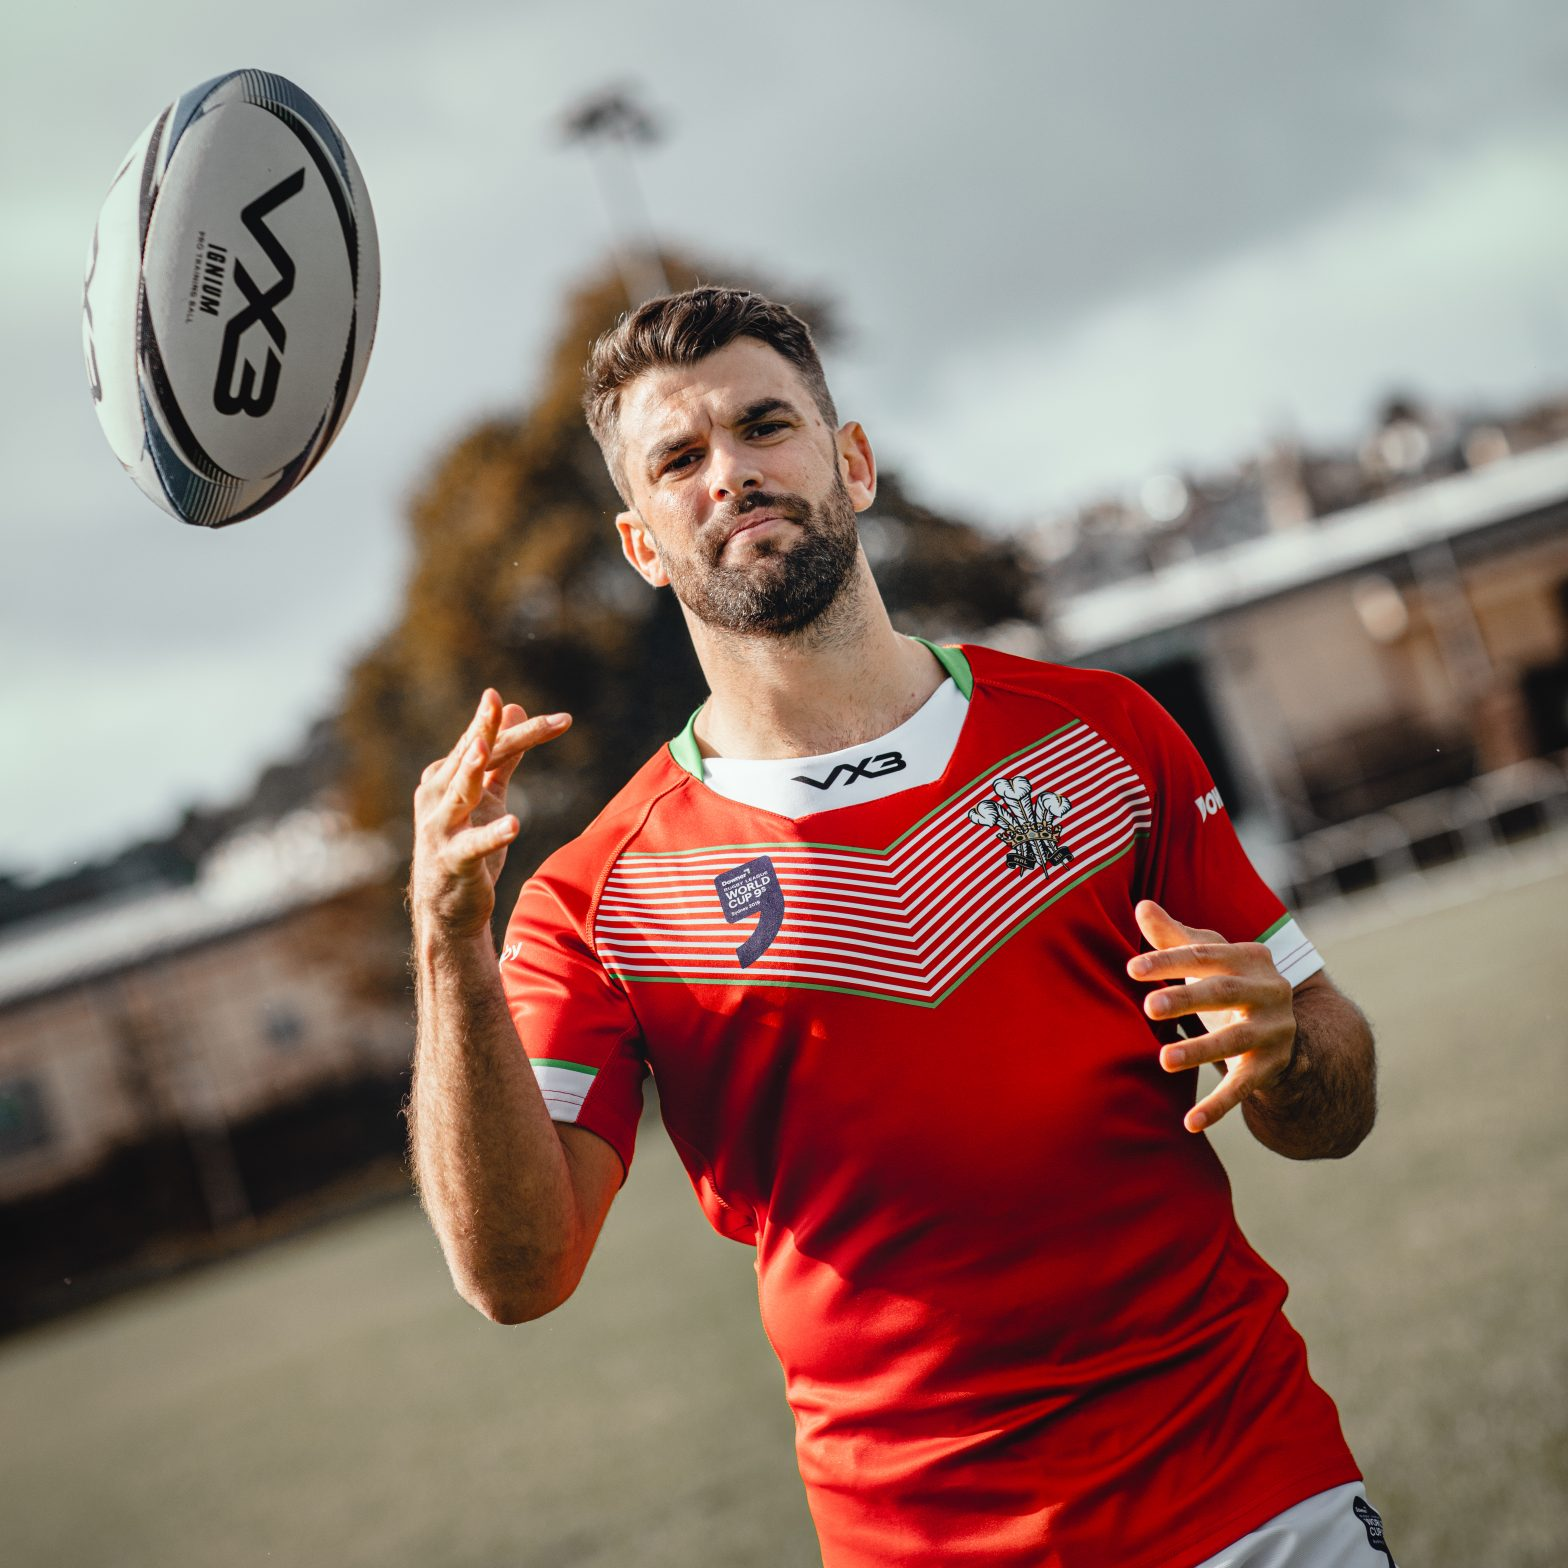 Wales men's team captain Elliot Kear models some of the new kit